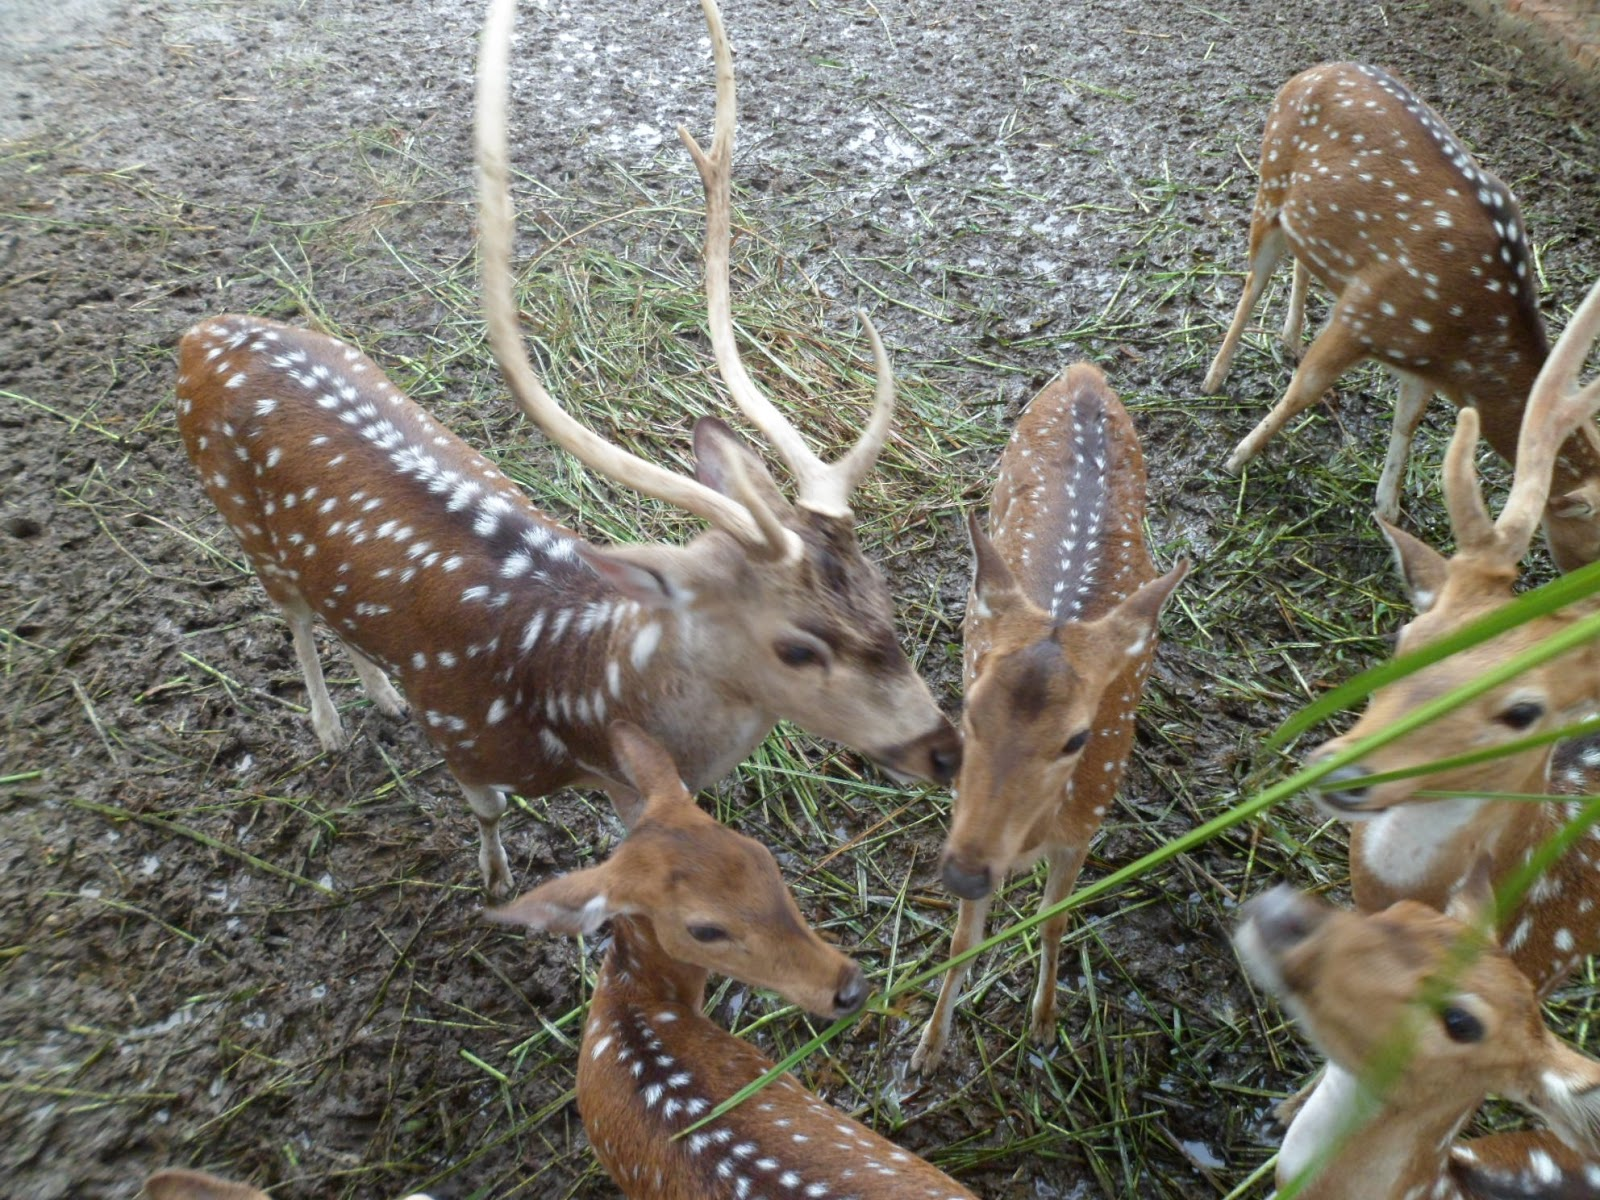 deer, deer farming, deer farm, deer picture, deer breeds